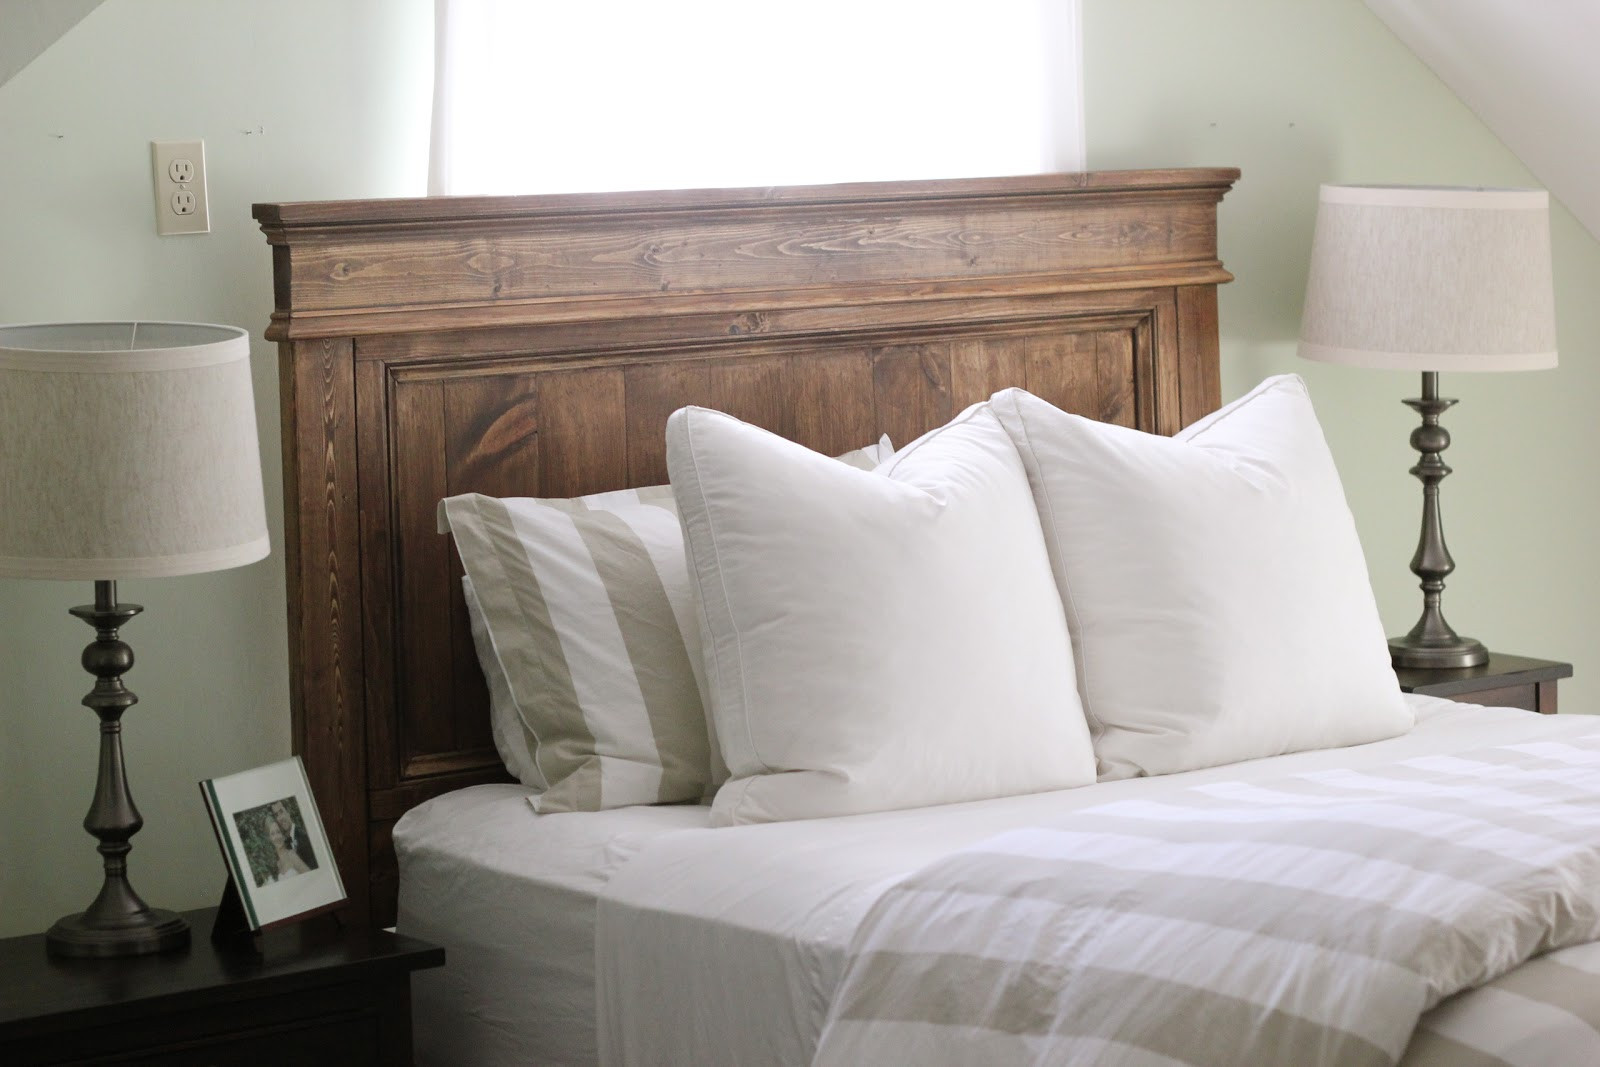 Best ideas about DIY Wood Headboard Plans . Save or Pin Jenny Steffens Hobick We built a bed DIY Wooden Headboard Now.